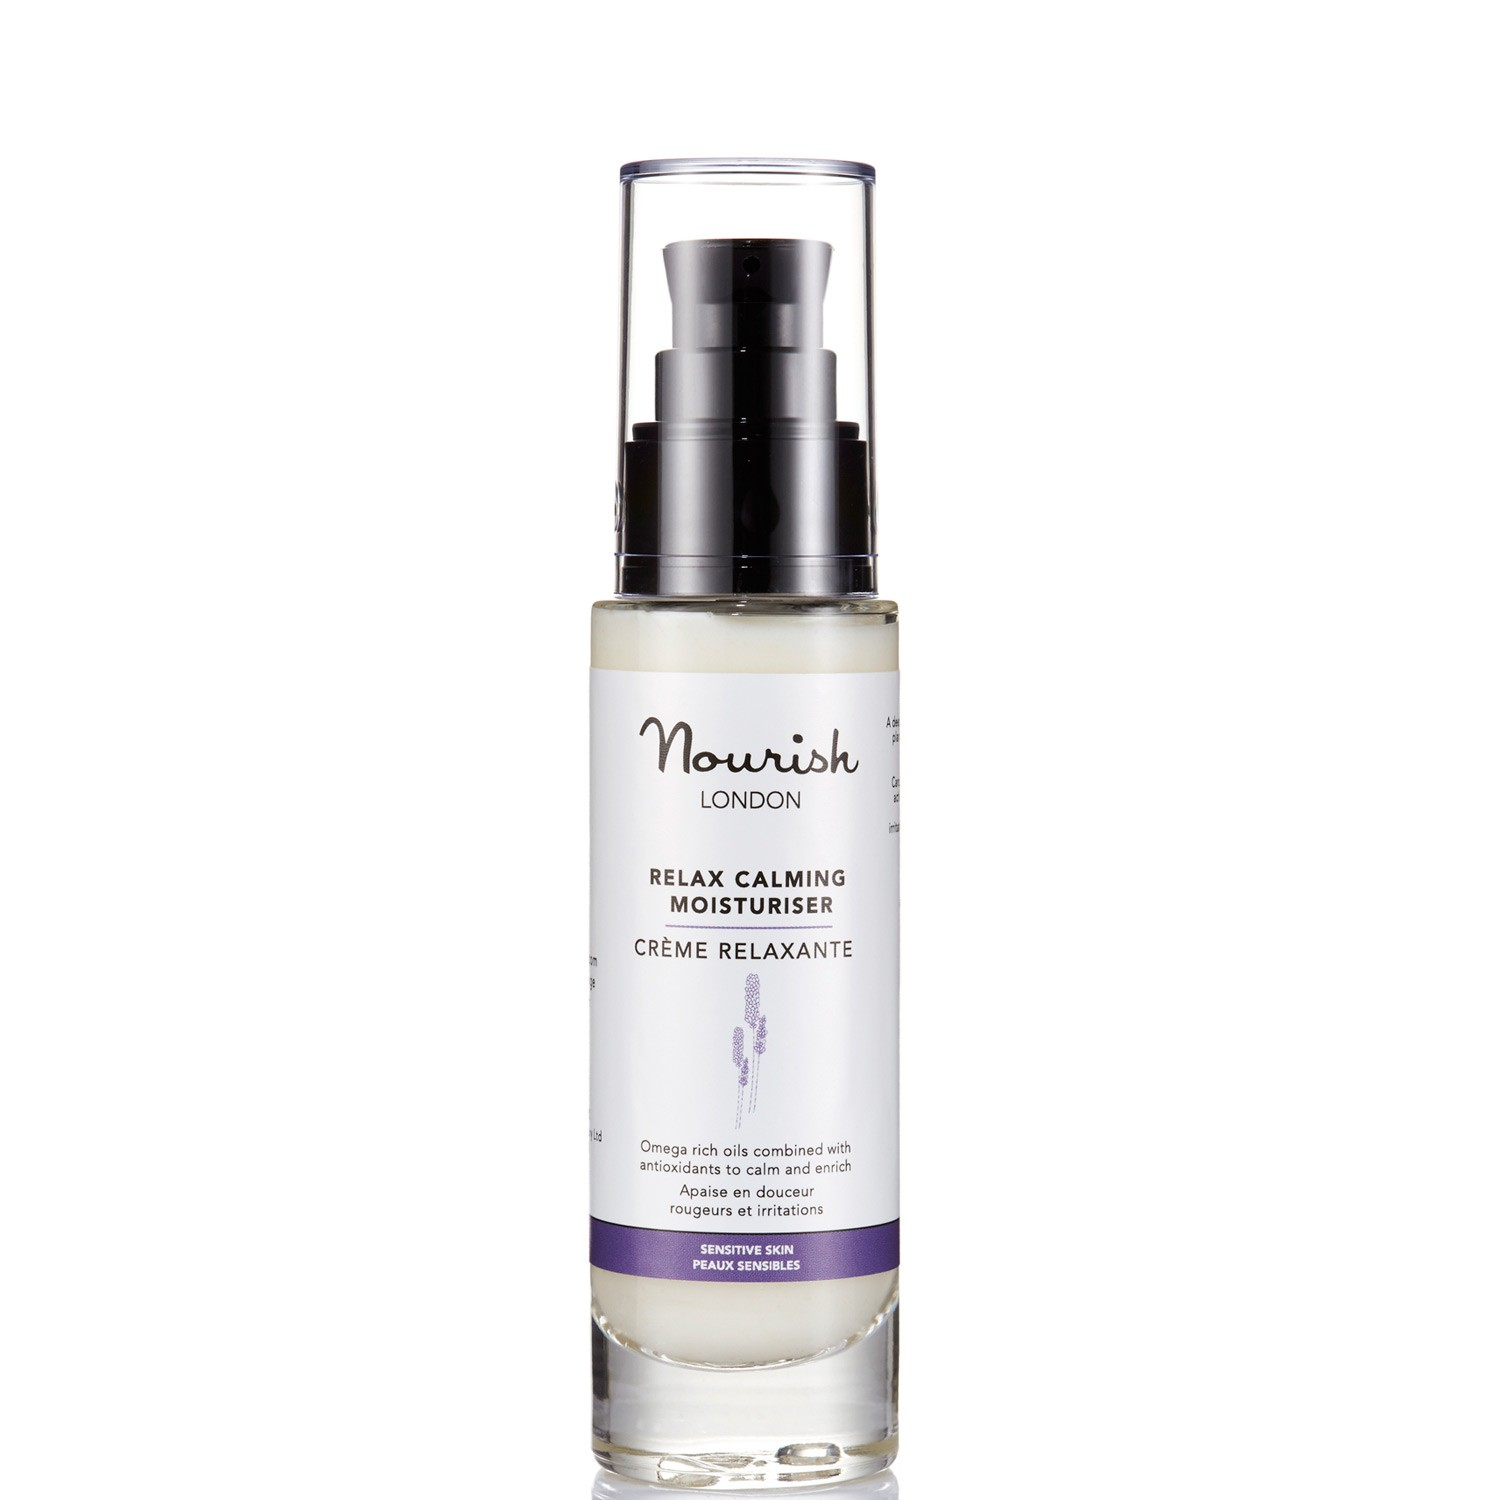 Nourish Crema Calmante Relax Piel Sensible 50ml